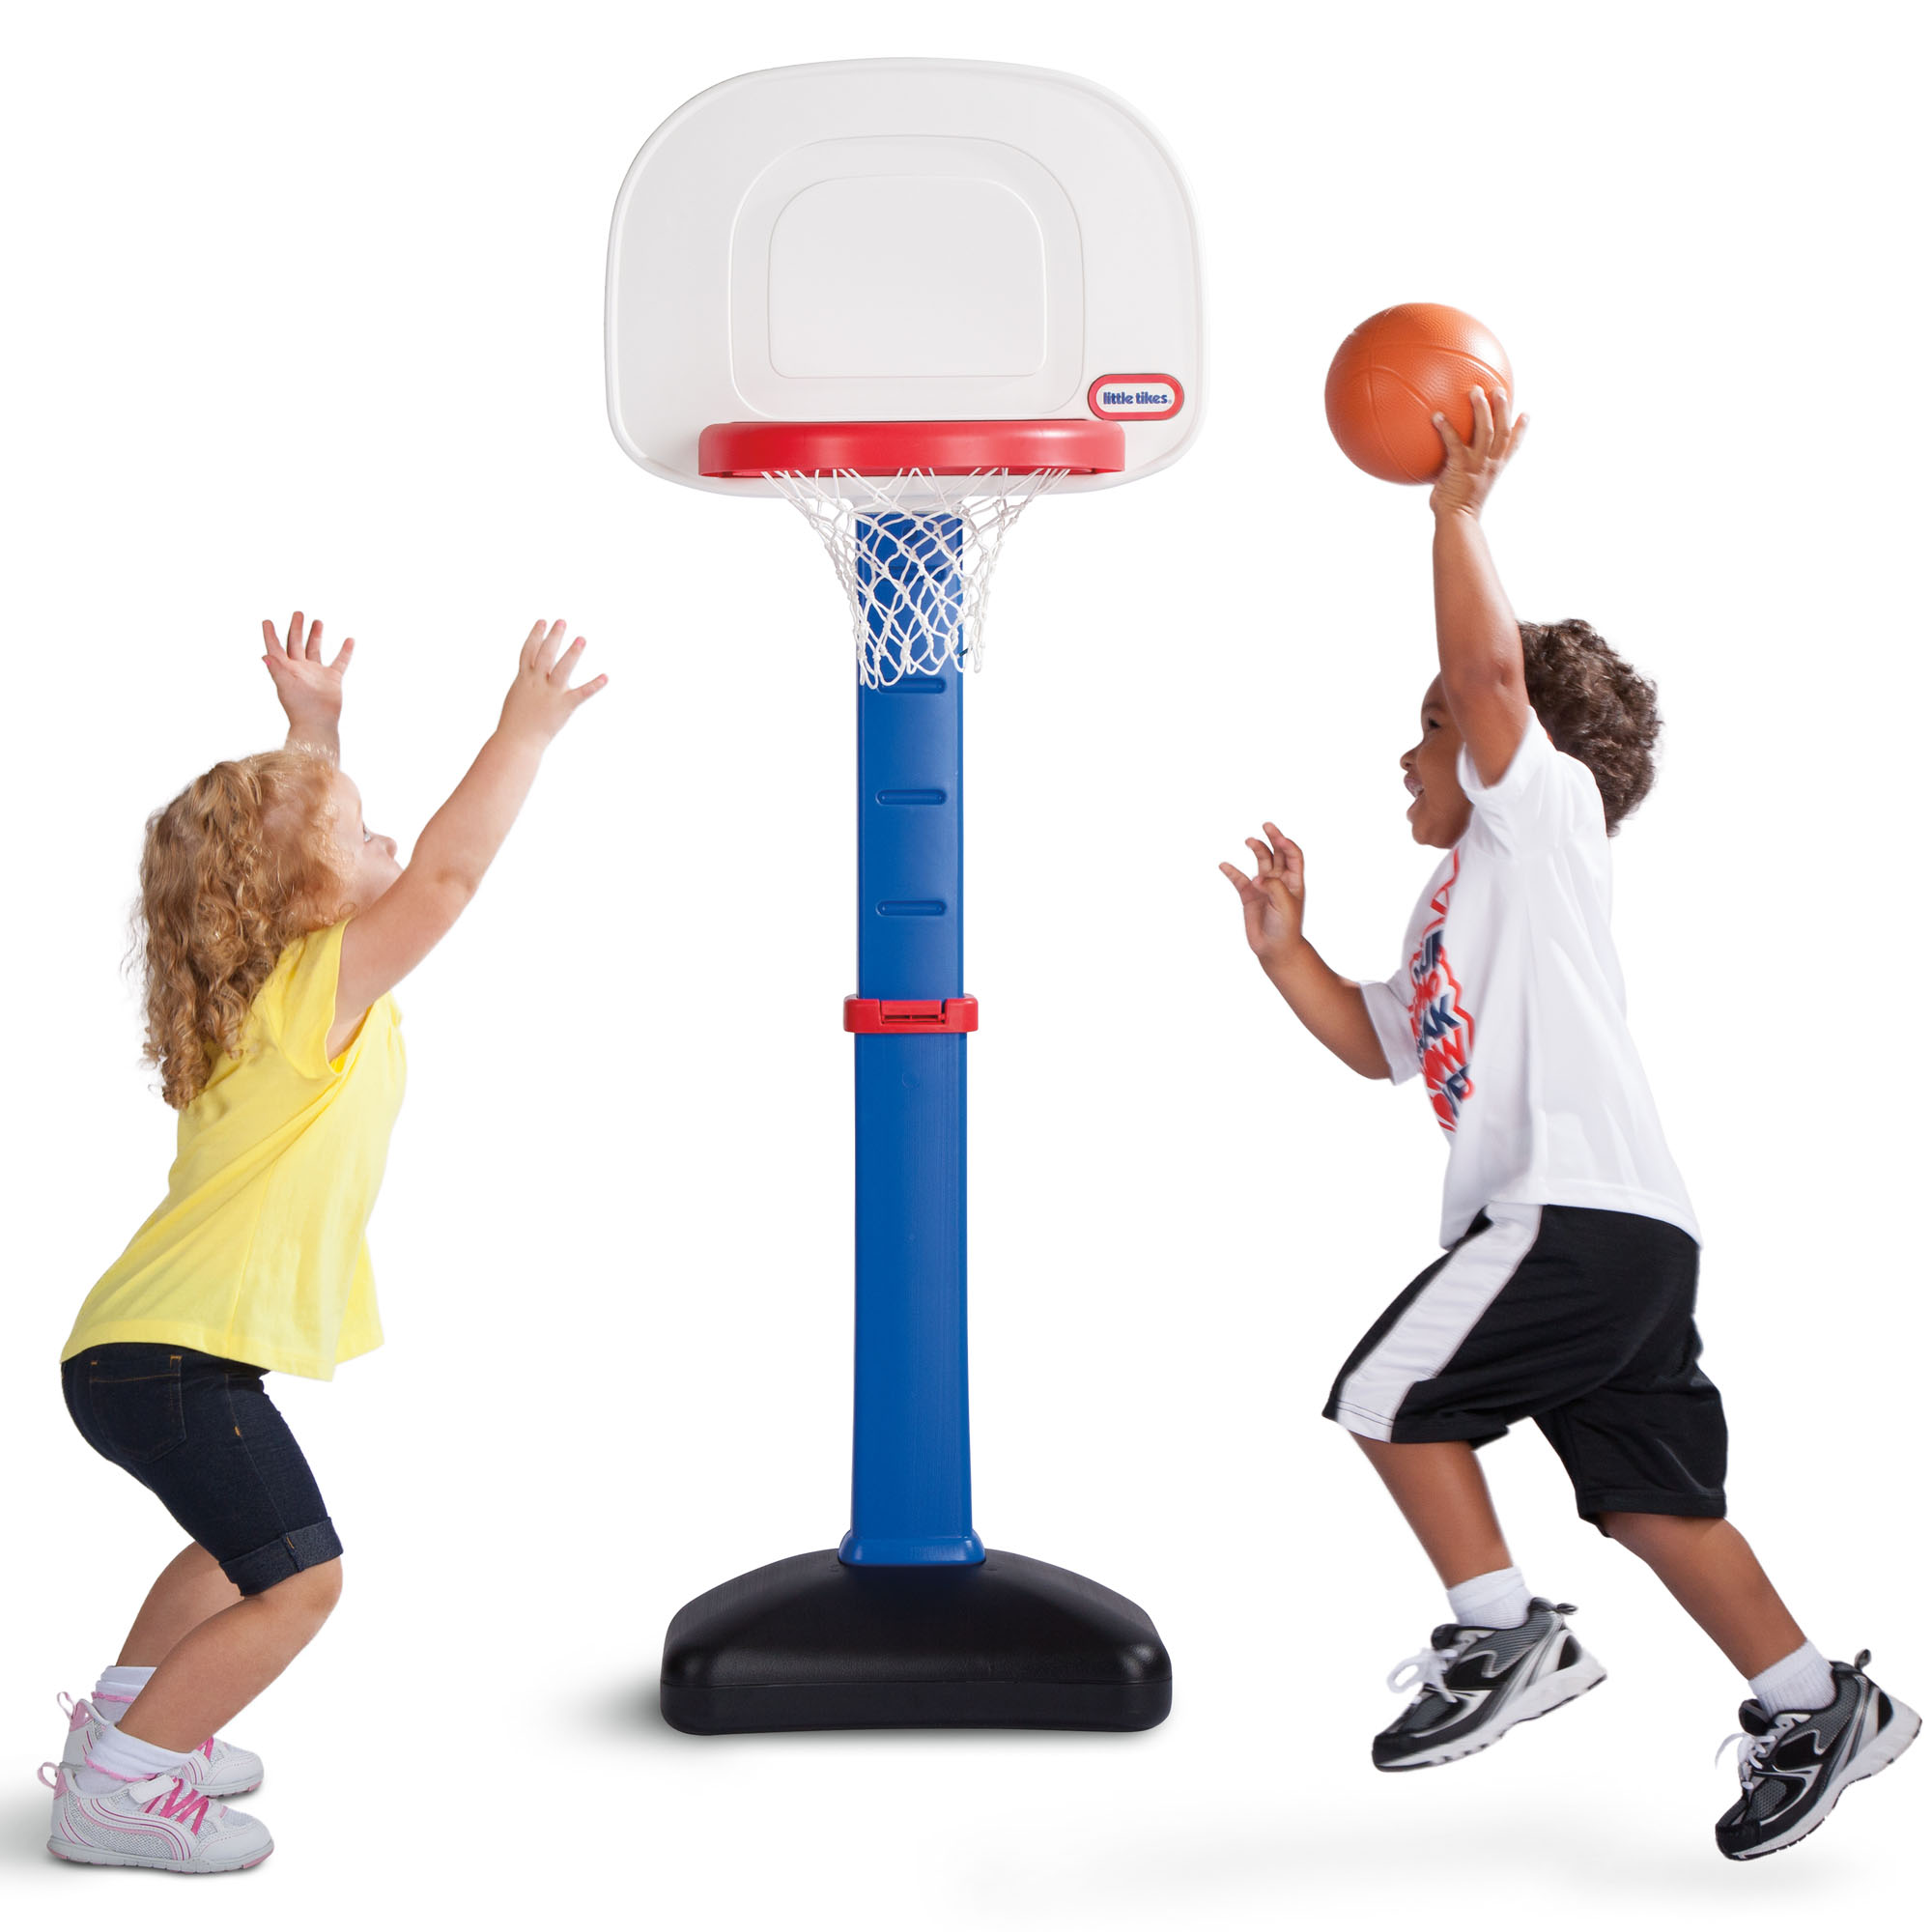 Little Tikes TotSports Easy Score Toy Basketball Set Only $19.99